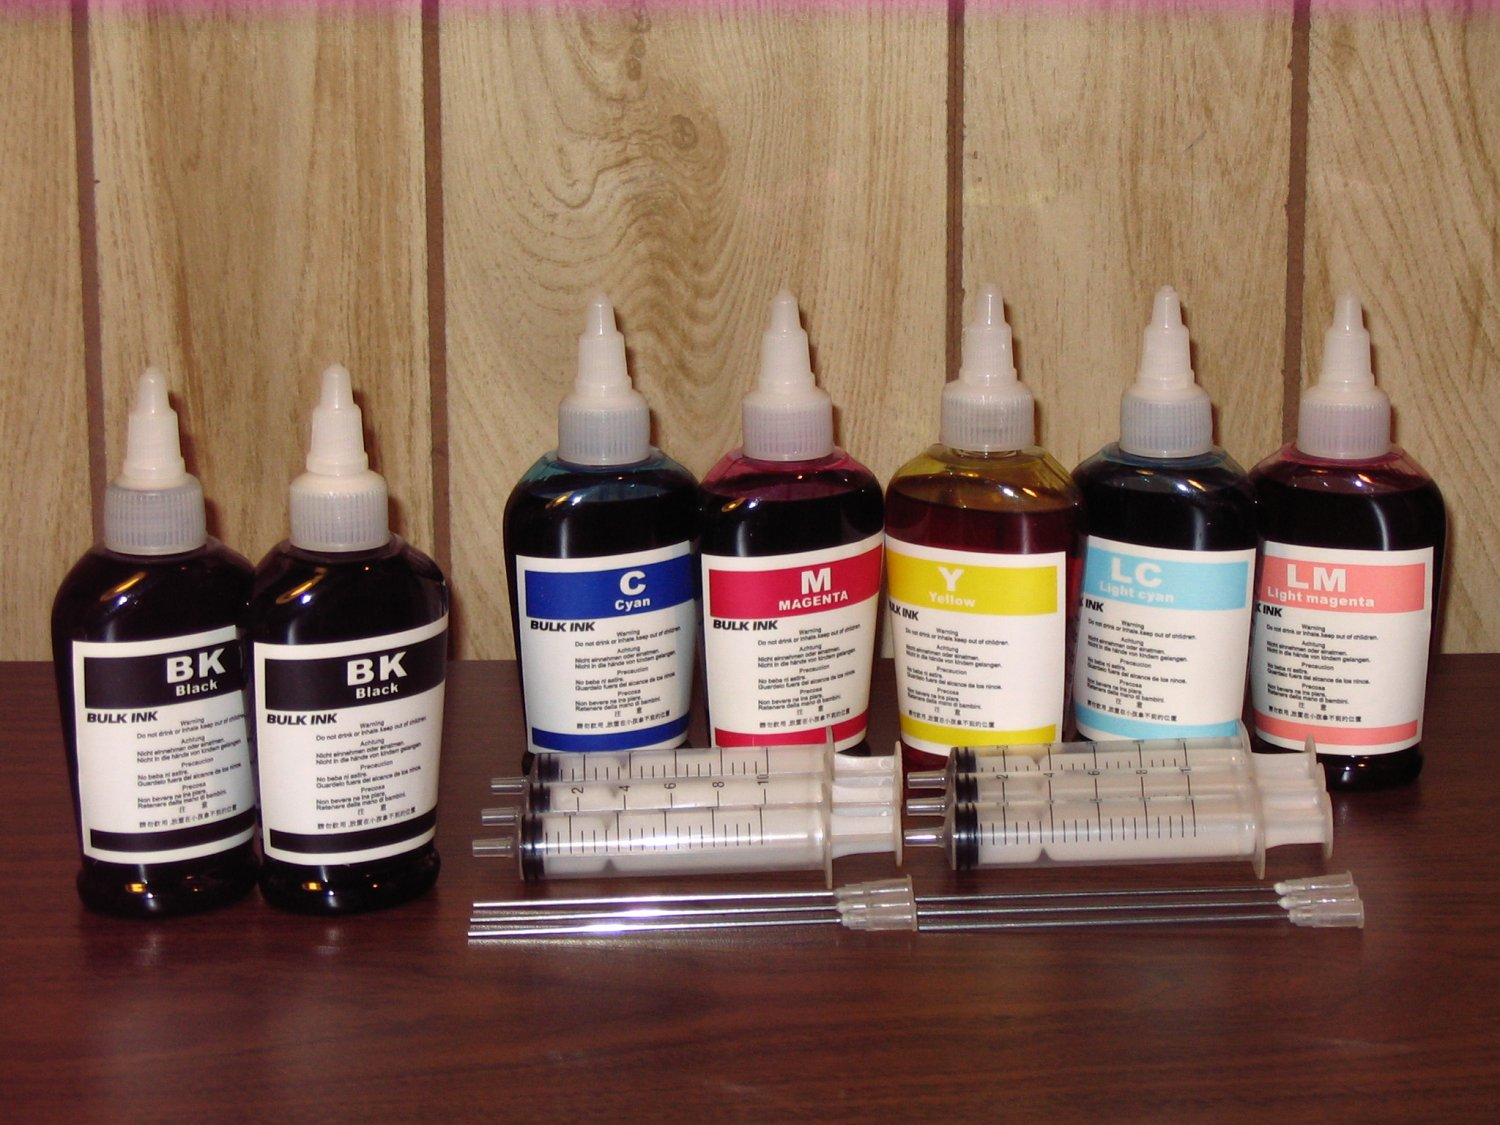 Bulk universal refill ink for EPSON, HP, CANON inkjet printer, 100ml x 7 bottles